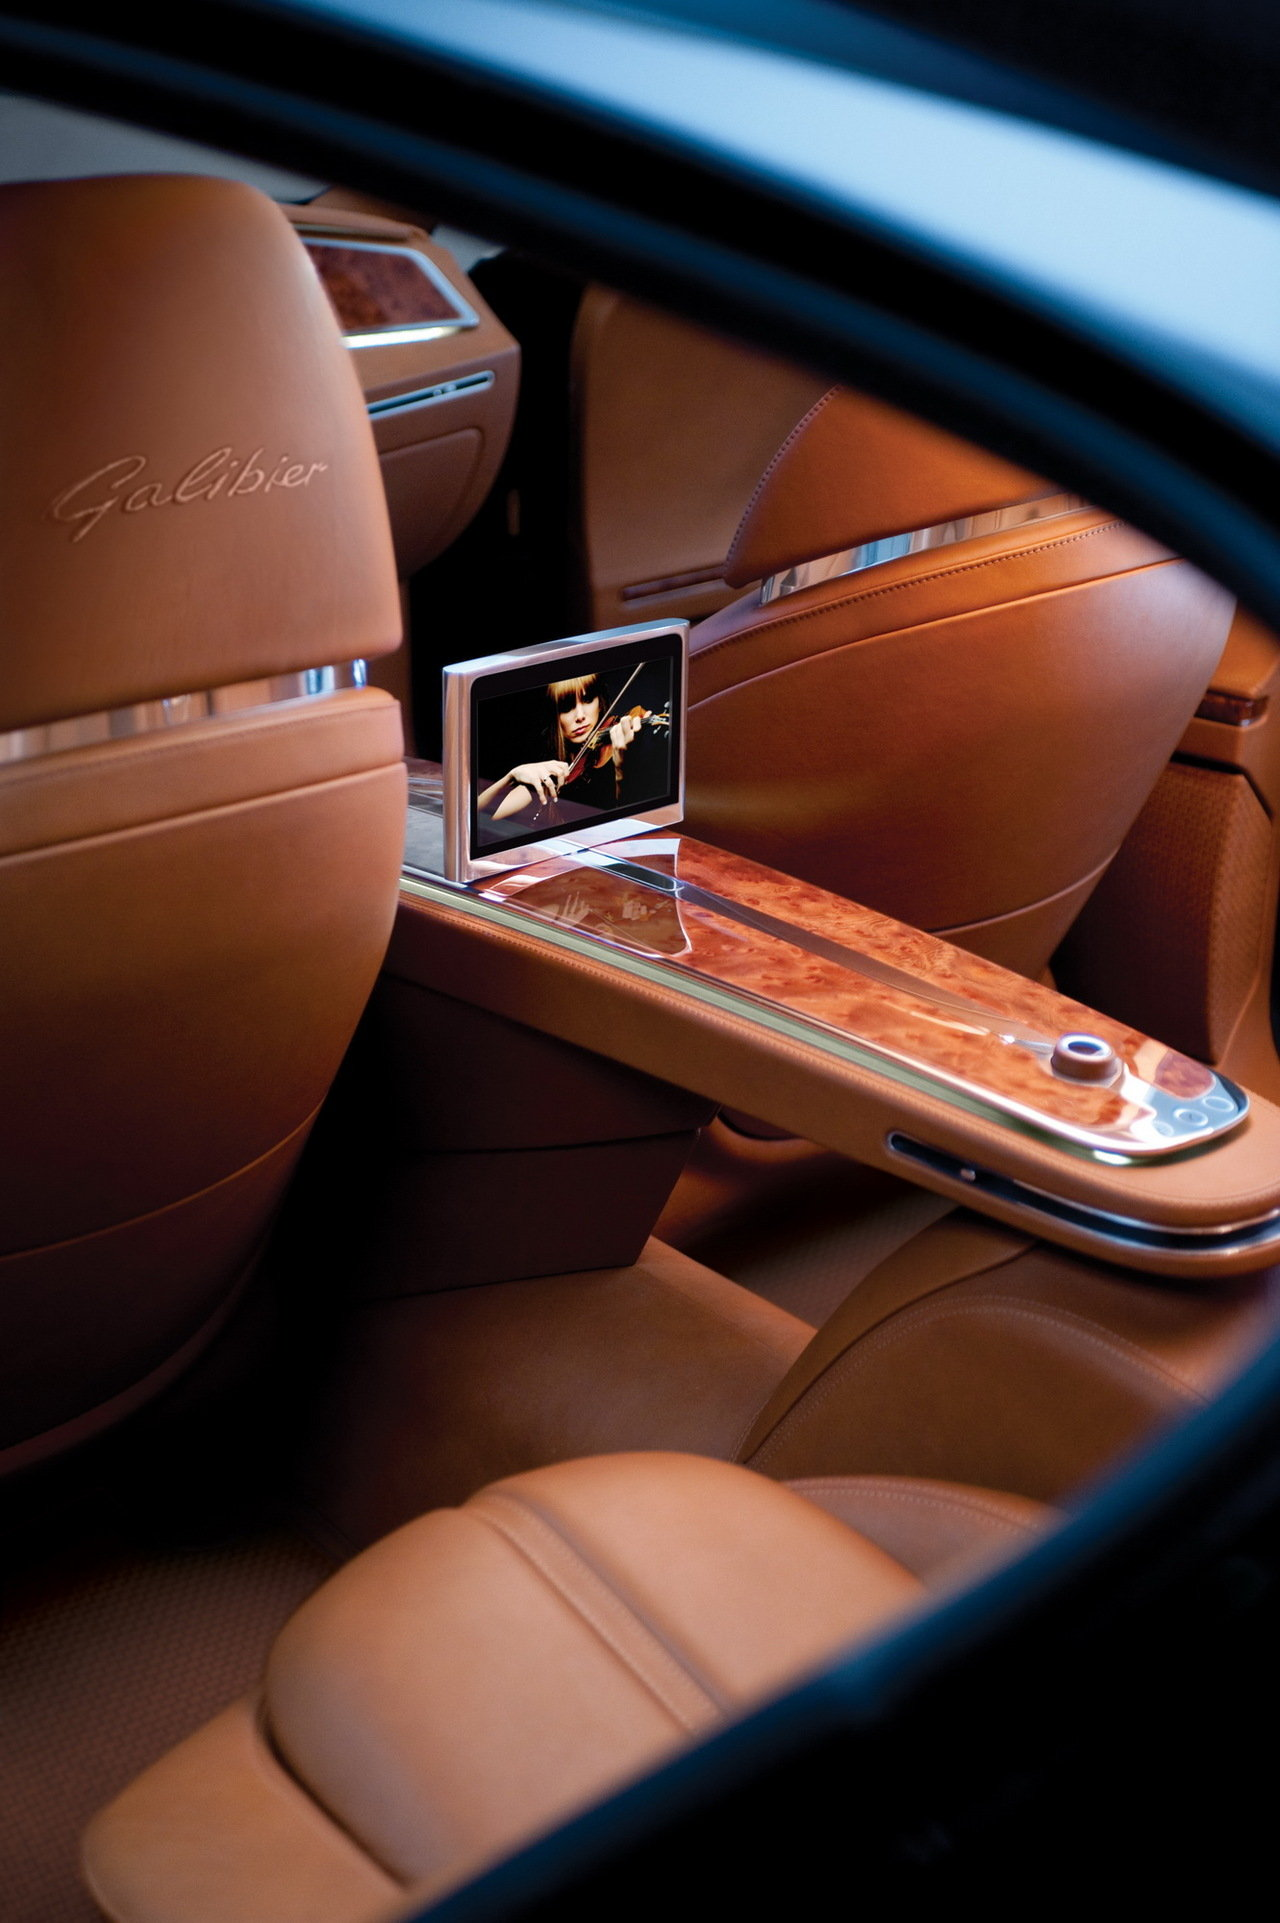 2015 bugatti 16c galibier picture 415627 car review top speed. Black Bedroom Furniture Sets. Home Design Ideas